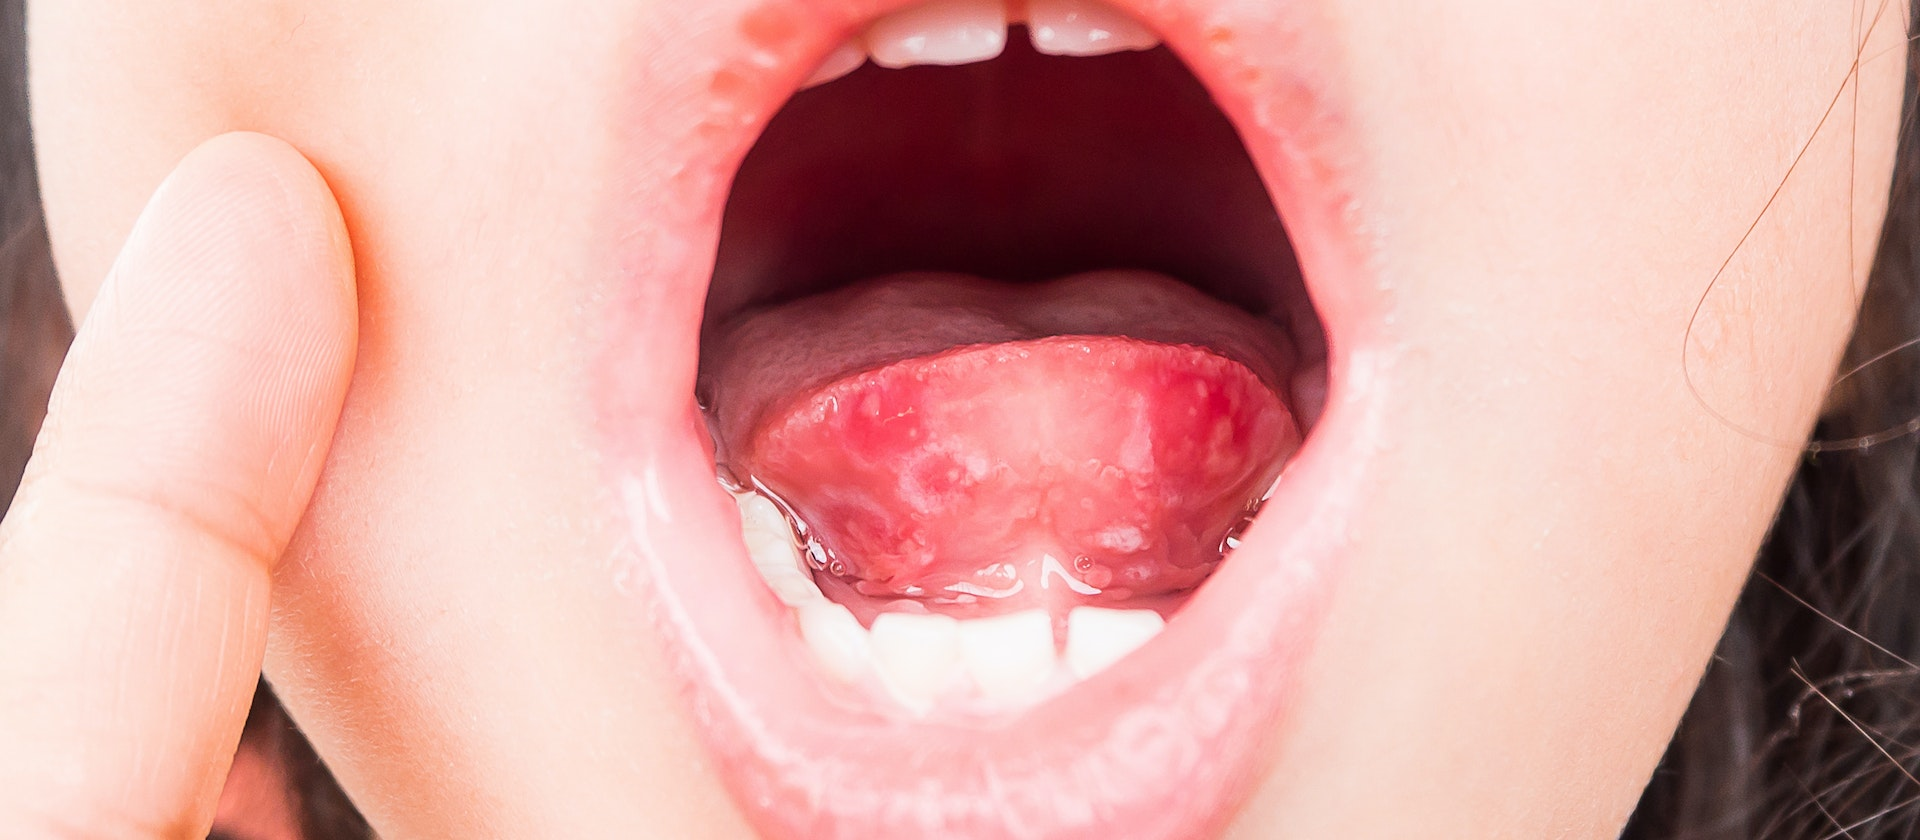 Red Spots In The Mouth Symptoms Causes Treatment Options Buoy